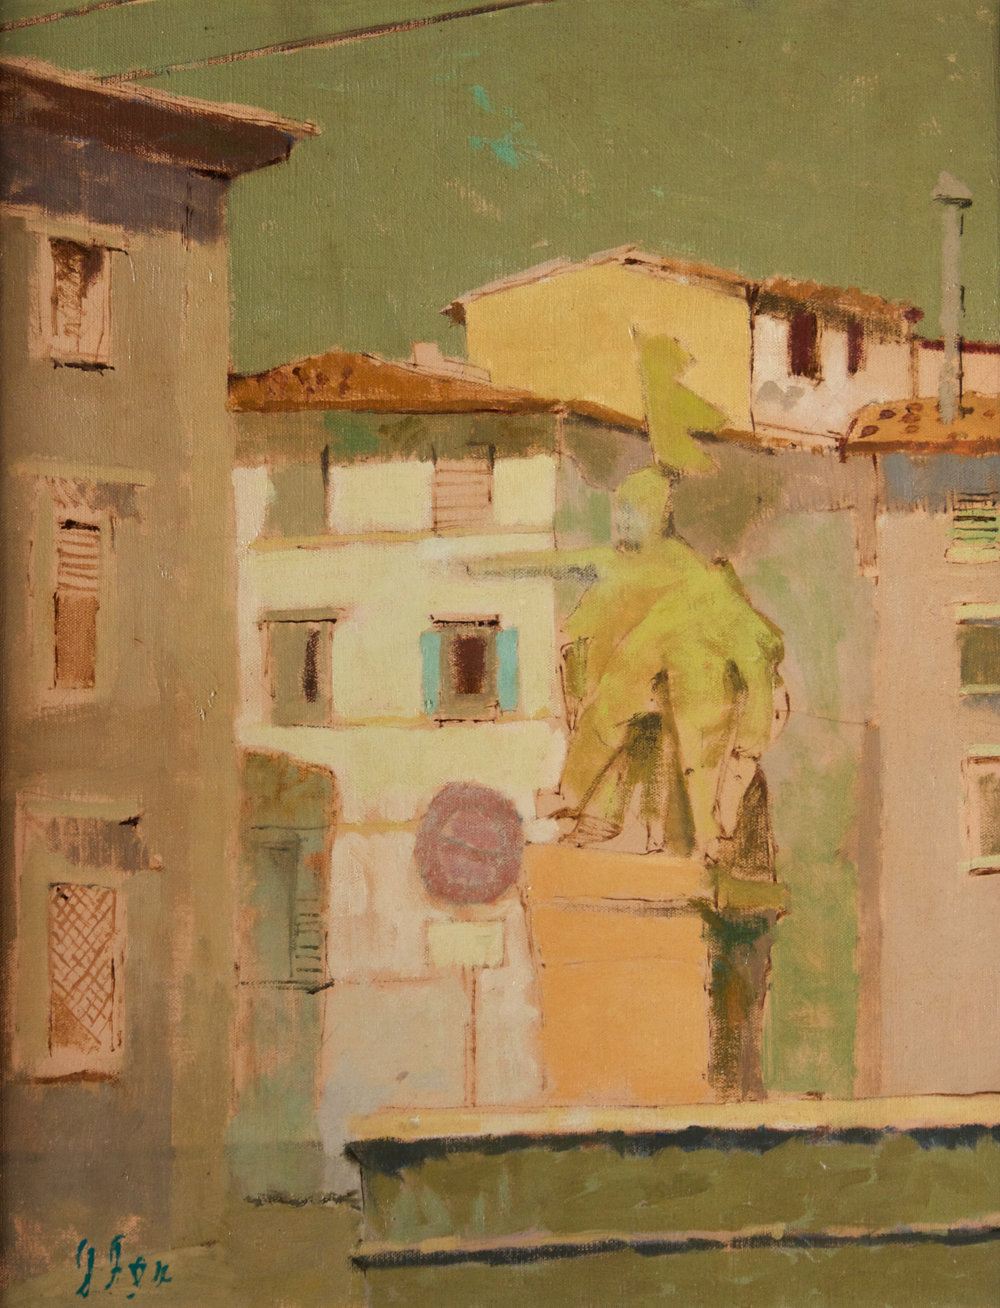 1956_Little_Square_Florence_oil_on_linen_20x16in_PF033.jpg